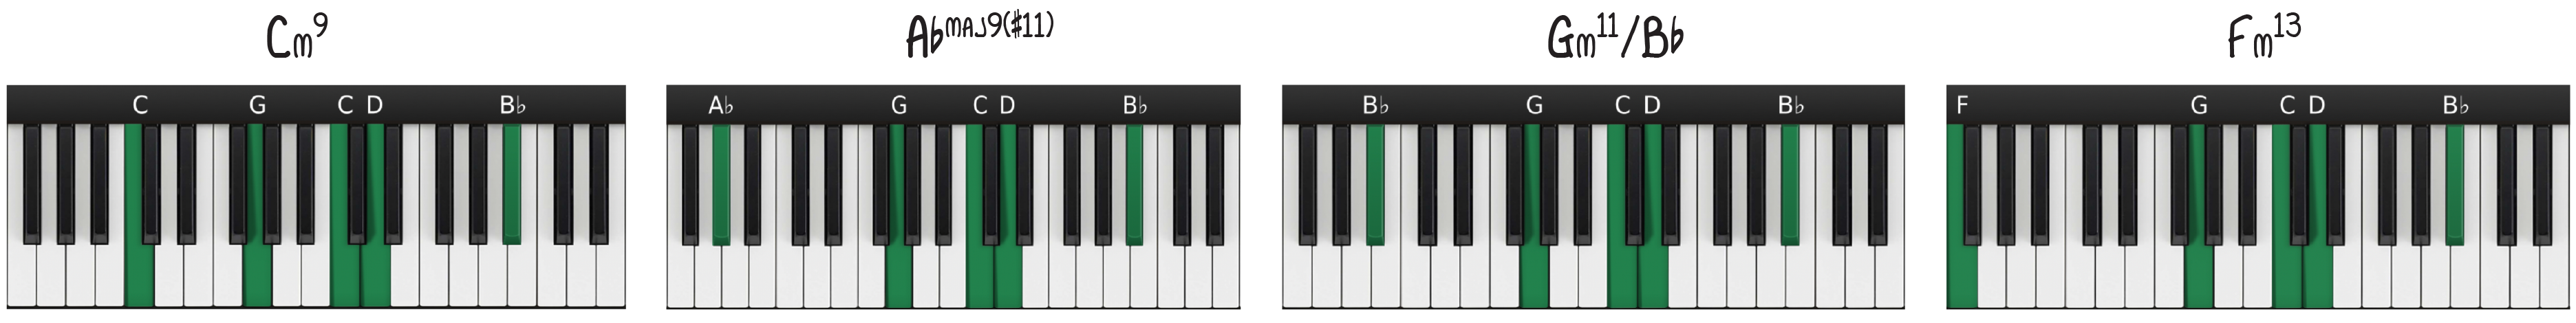 Improvise Sad Piano Progression Keyboards Diagrams